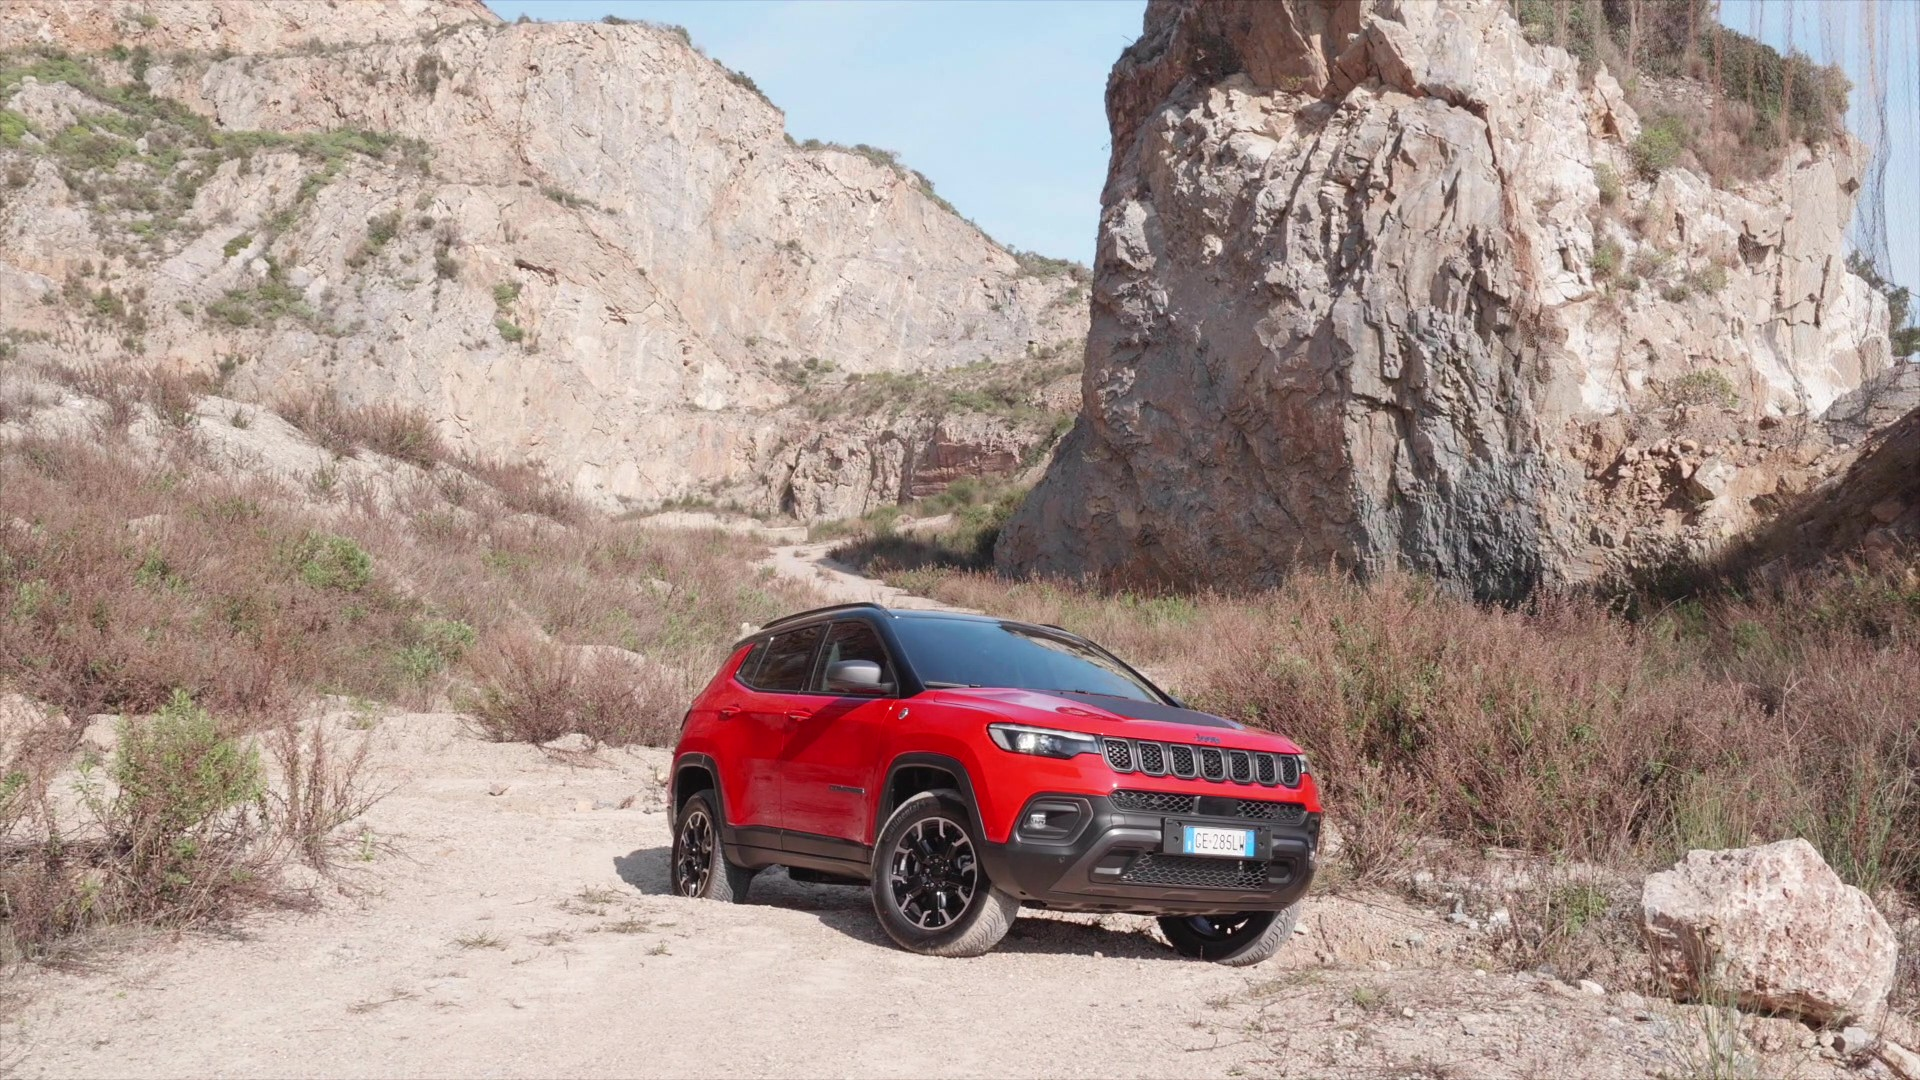 Footage New Jeep® Compass Trailhawk (Colorado Red)